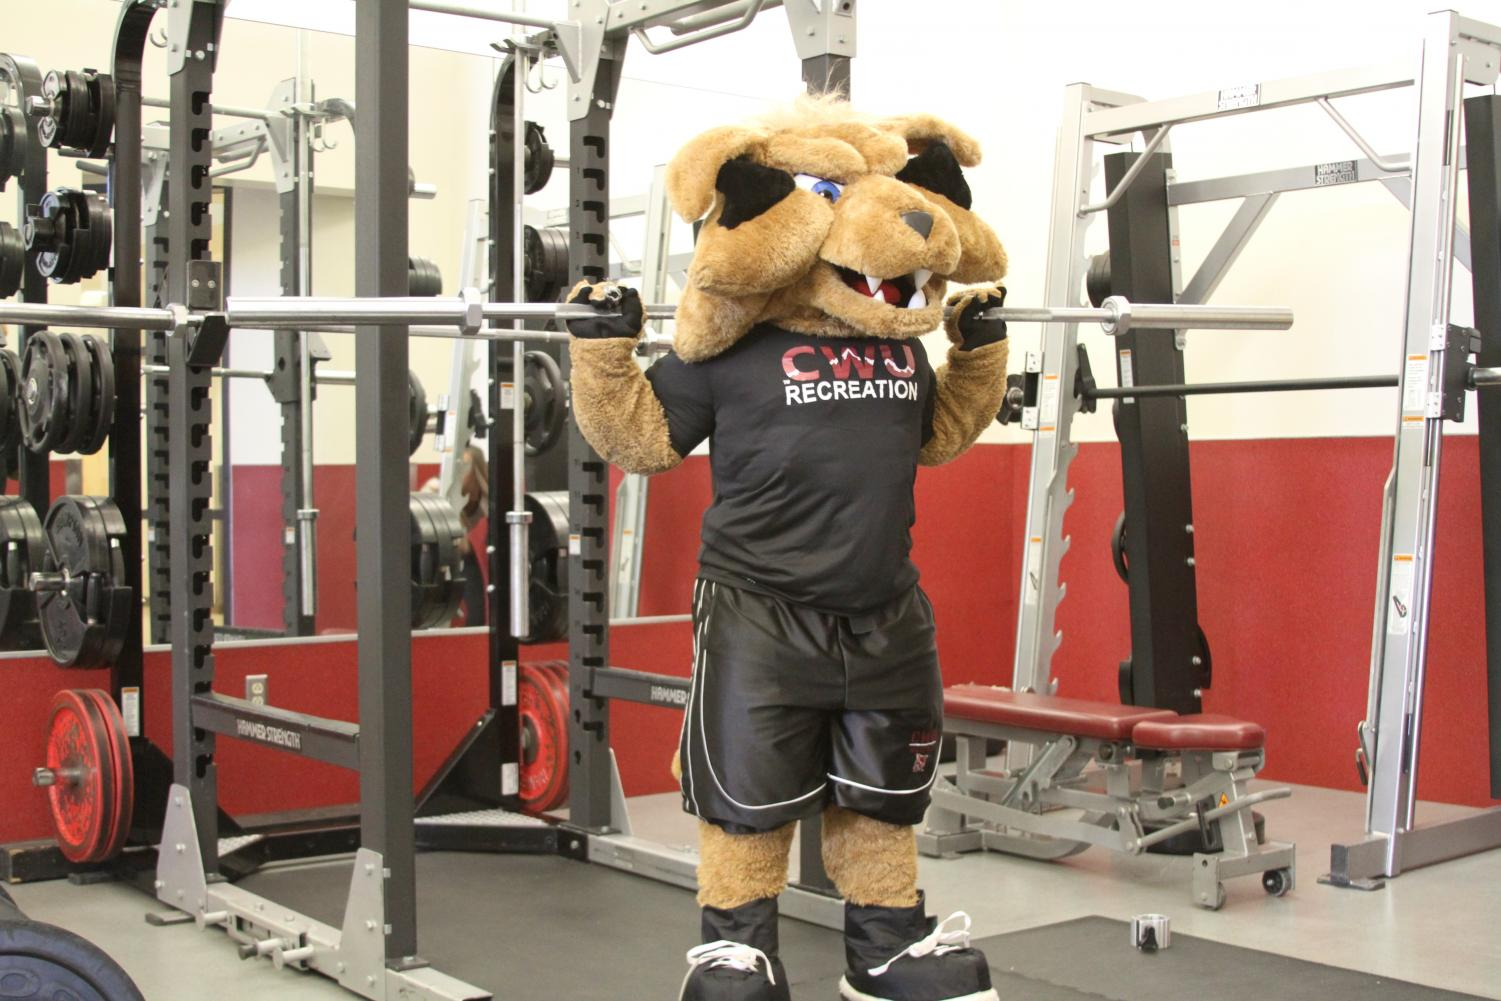 The Iron Cat Games started April 1 and will run through May 13. Students will compete in high intensity exercises for the chance to win prizes.